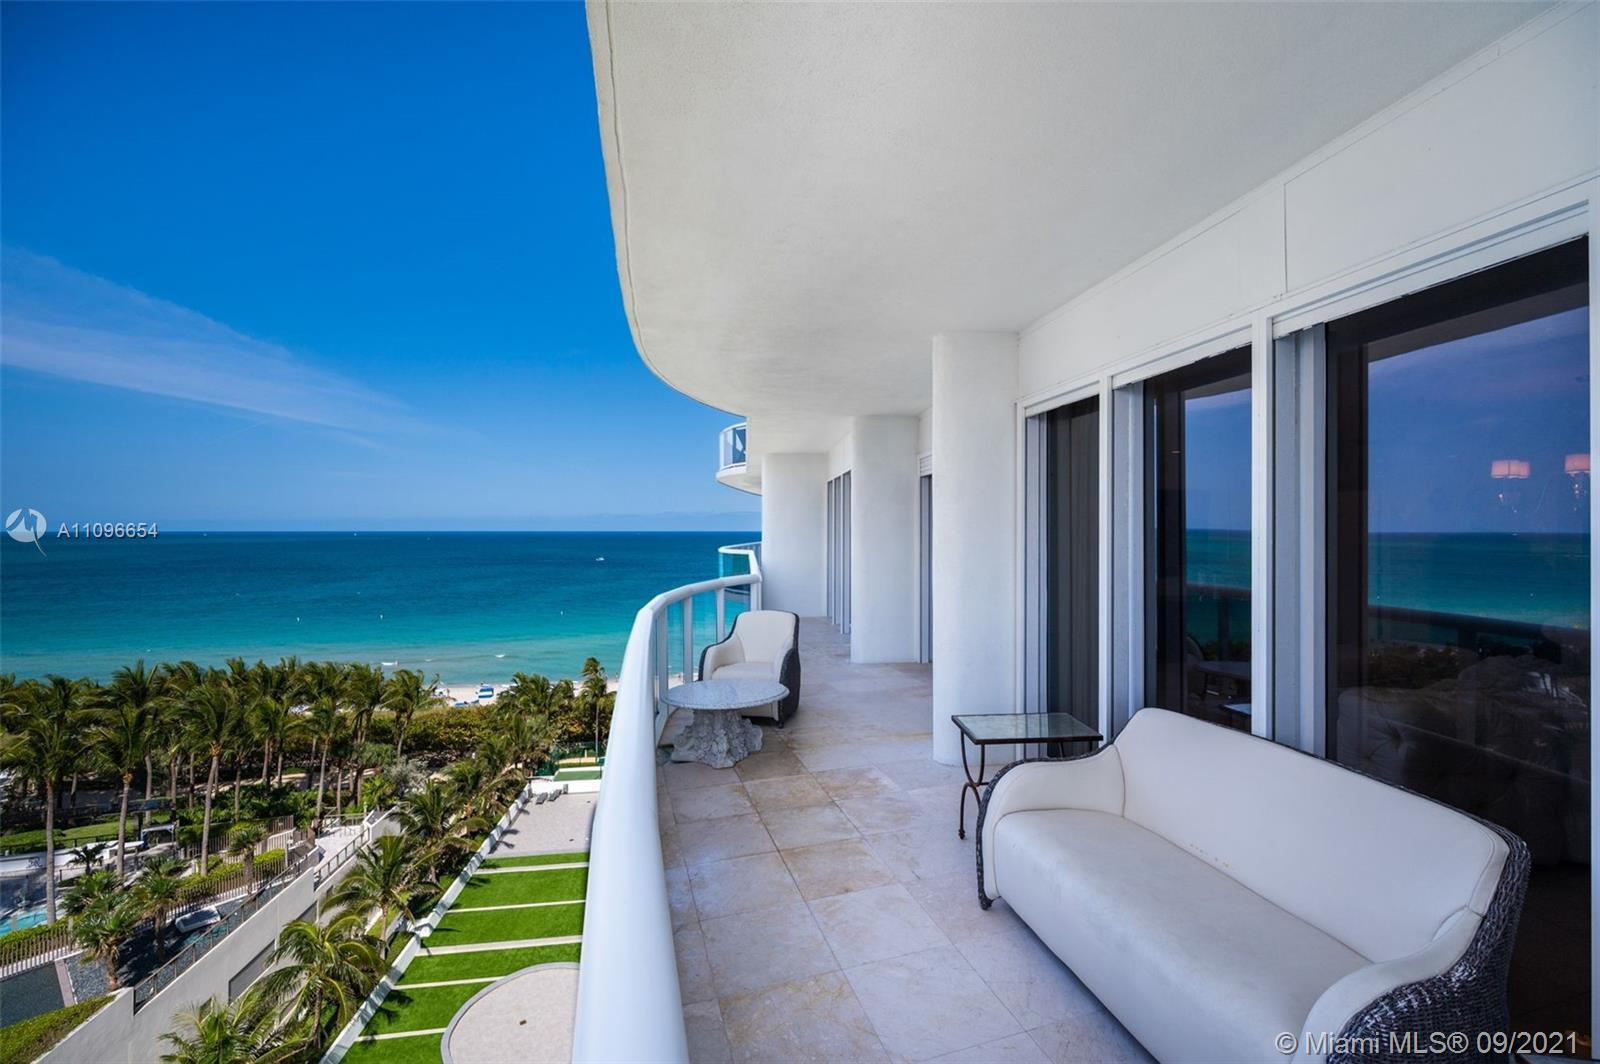 Spectacular Oceanfront Residence with Breathtaking Ocean and City Views.. 2160 SQFT unit, 02 Bed 02